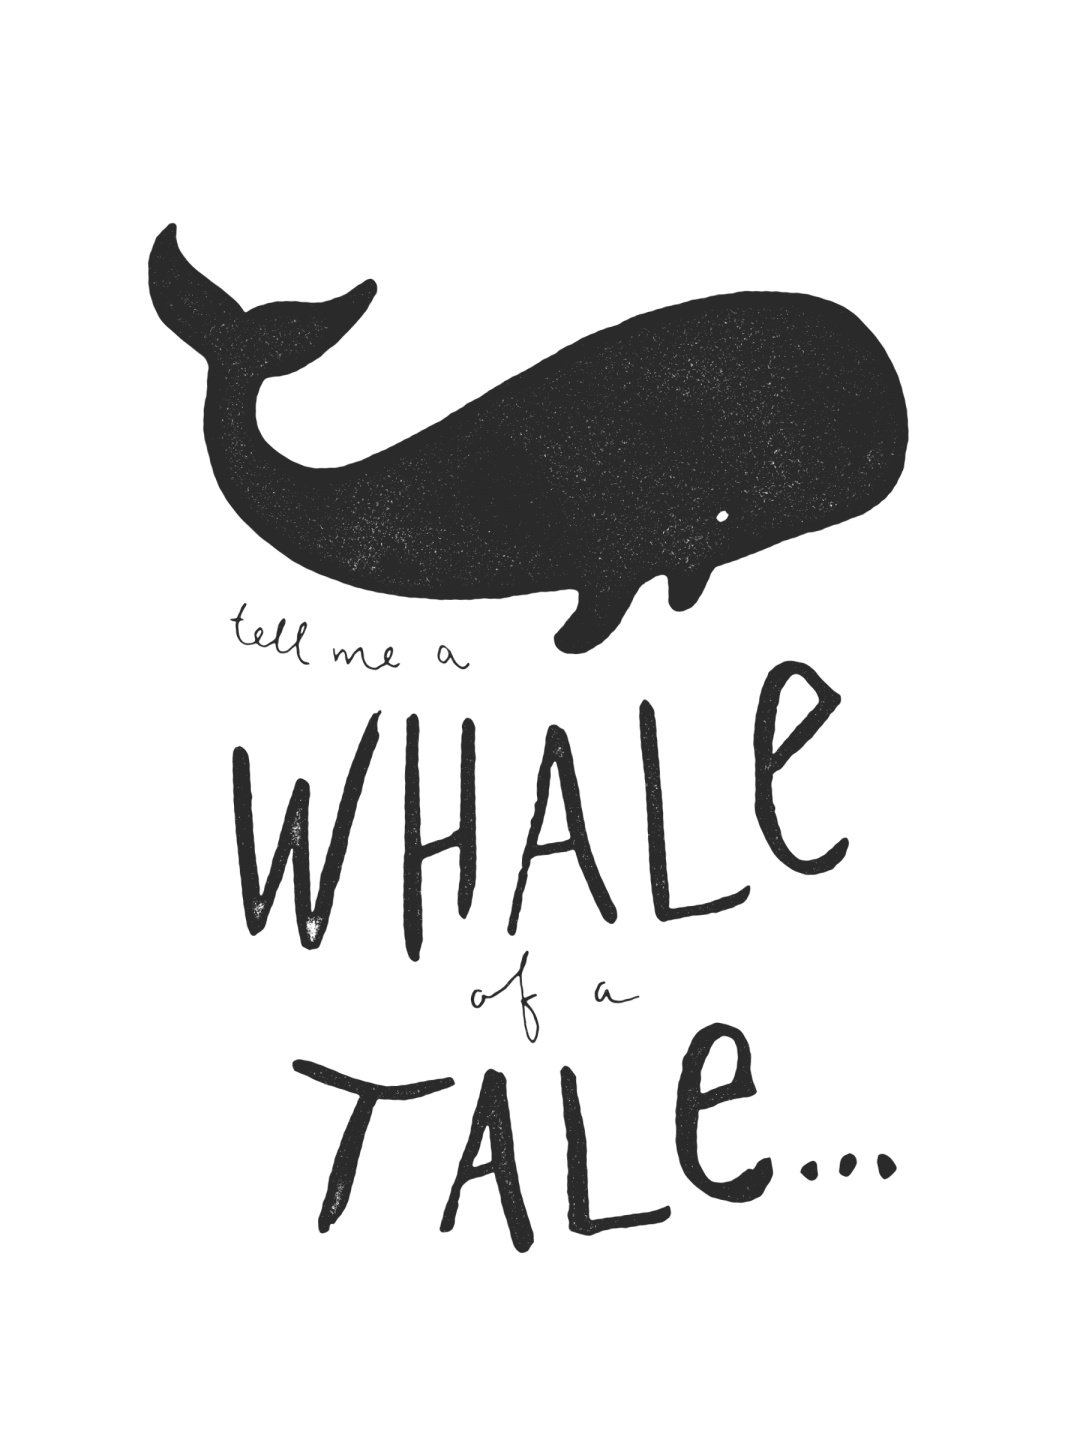 Lop + Lore: Whale of a Tale